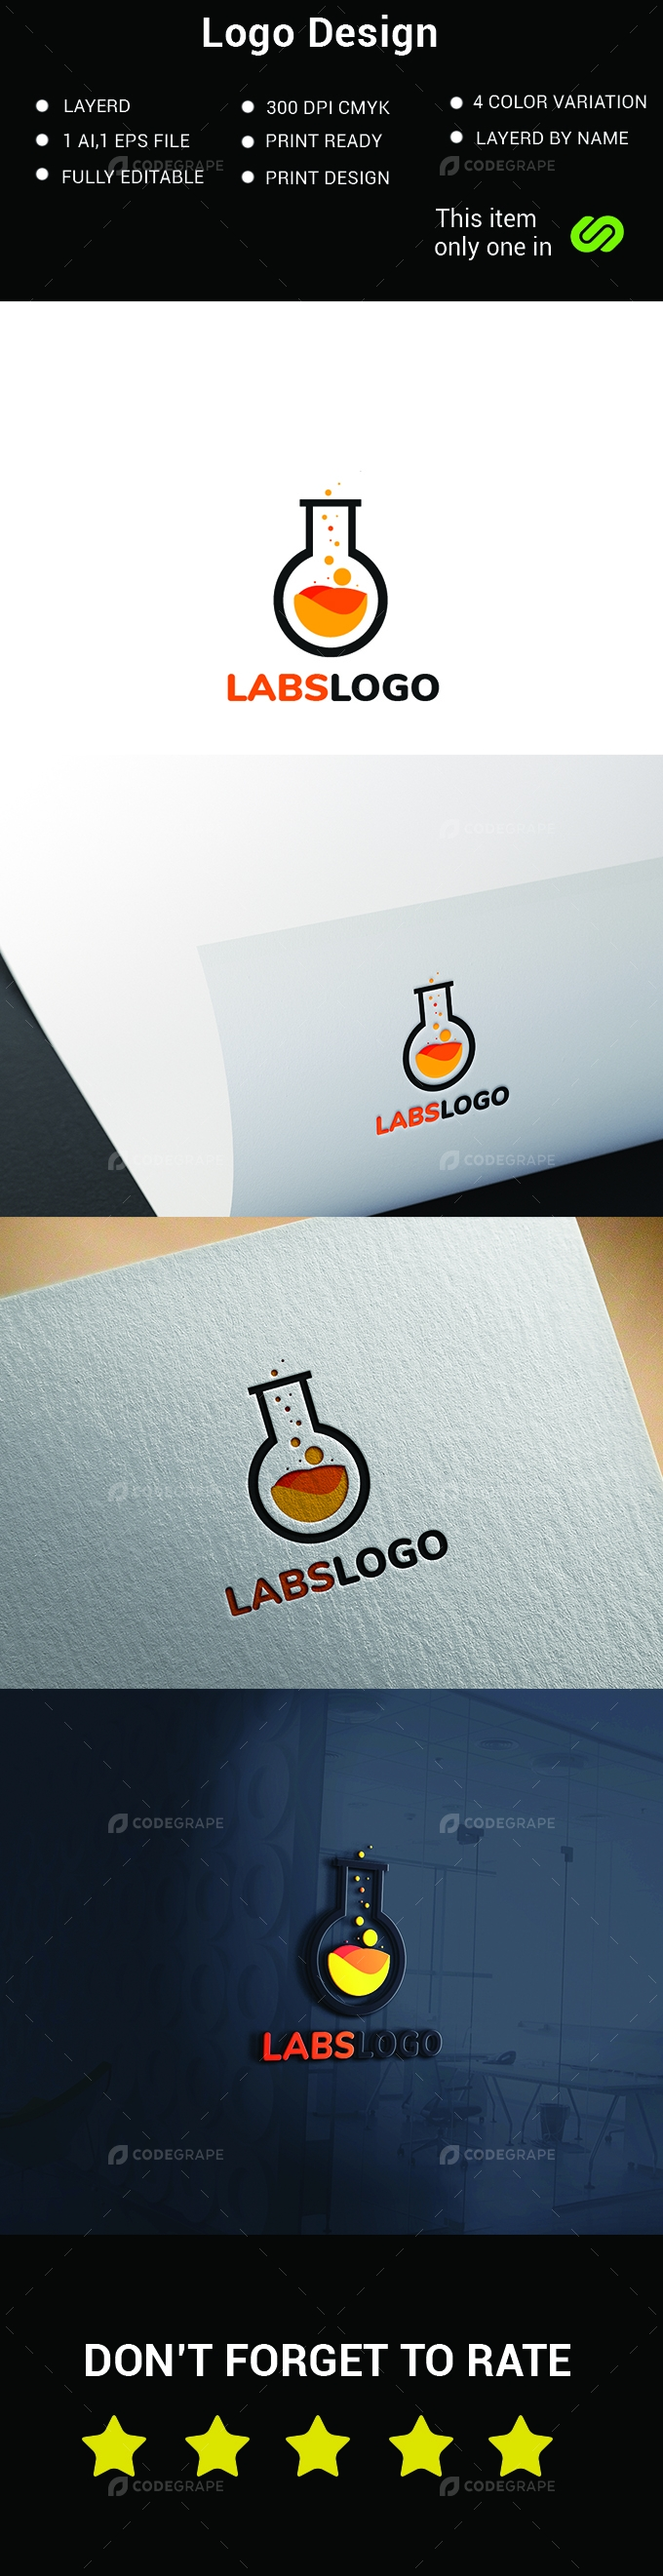 Lab Logo Design